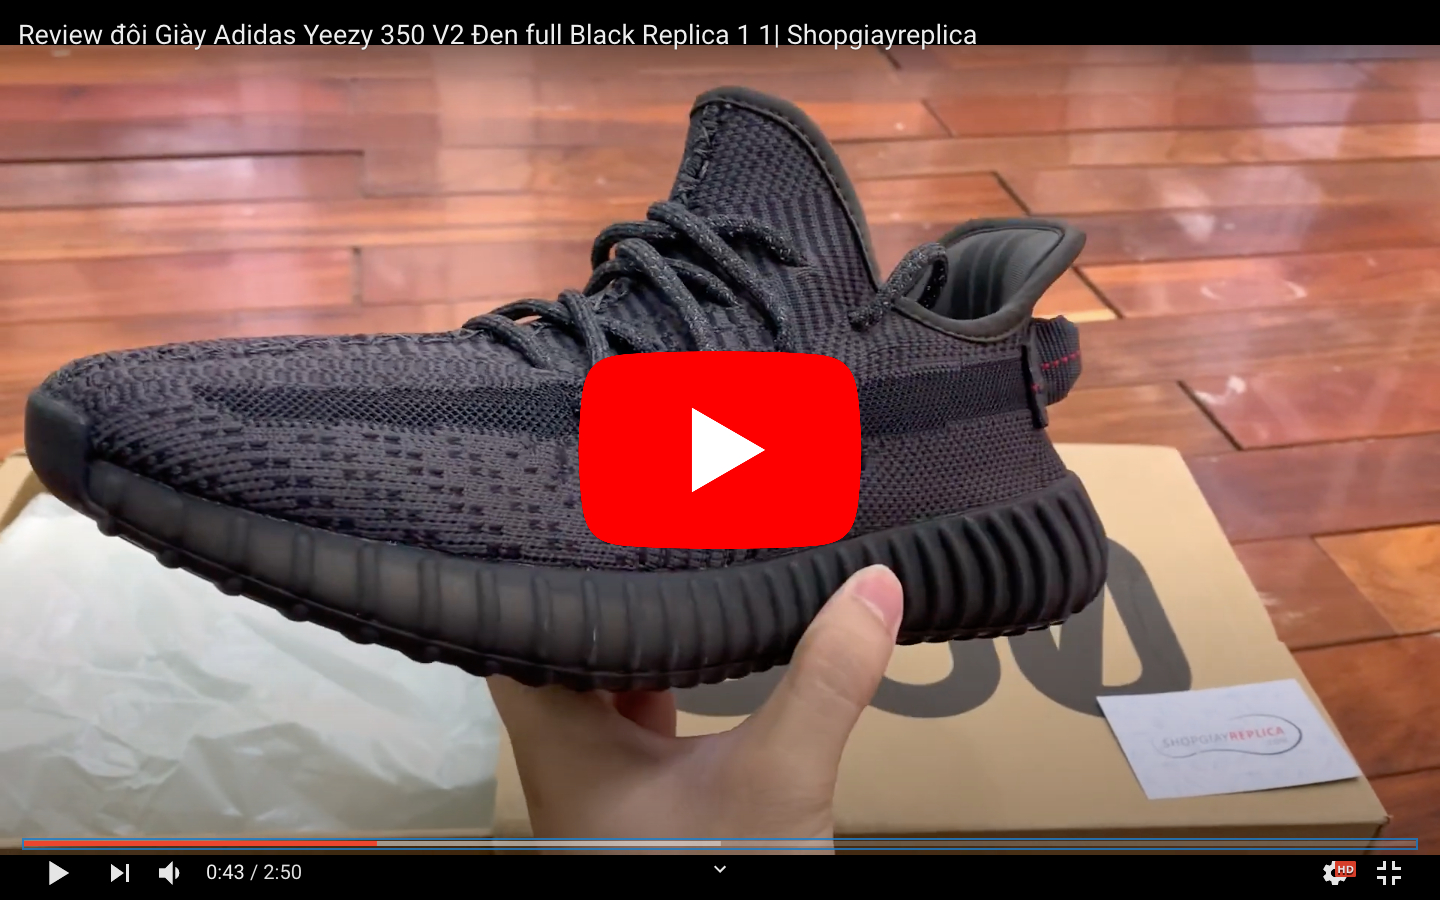 Video unbox giay yeezy 350 black static replica